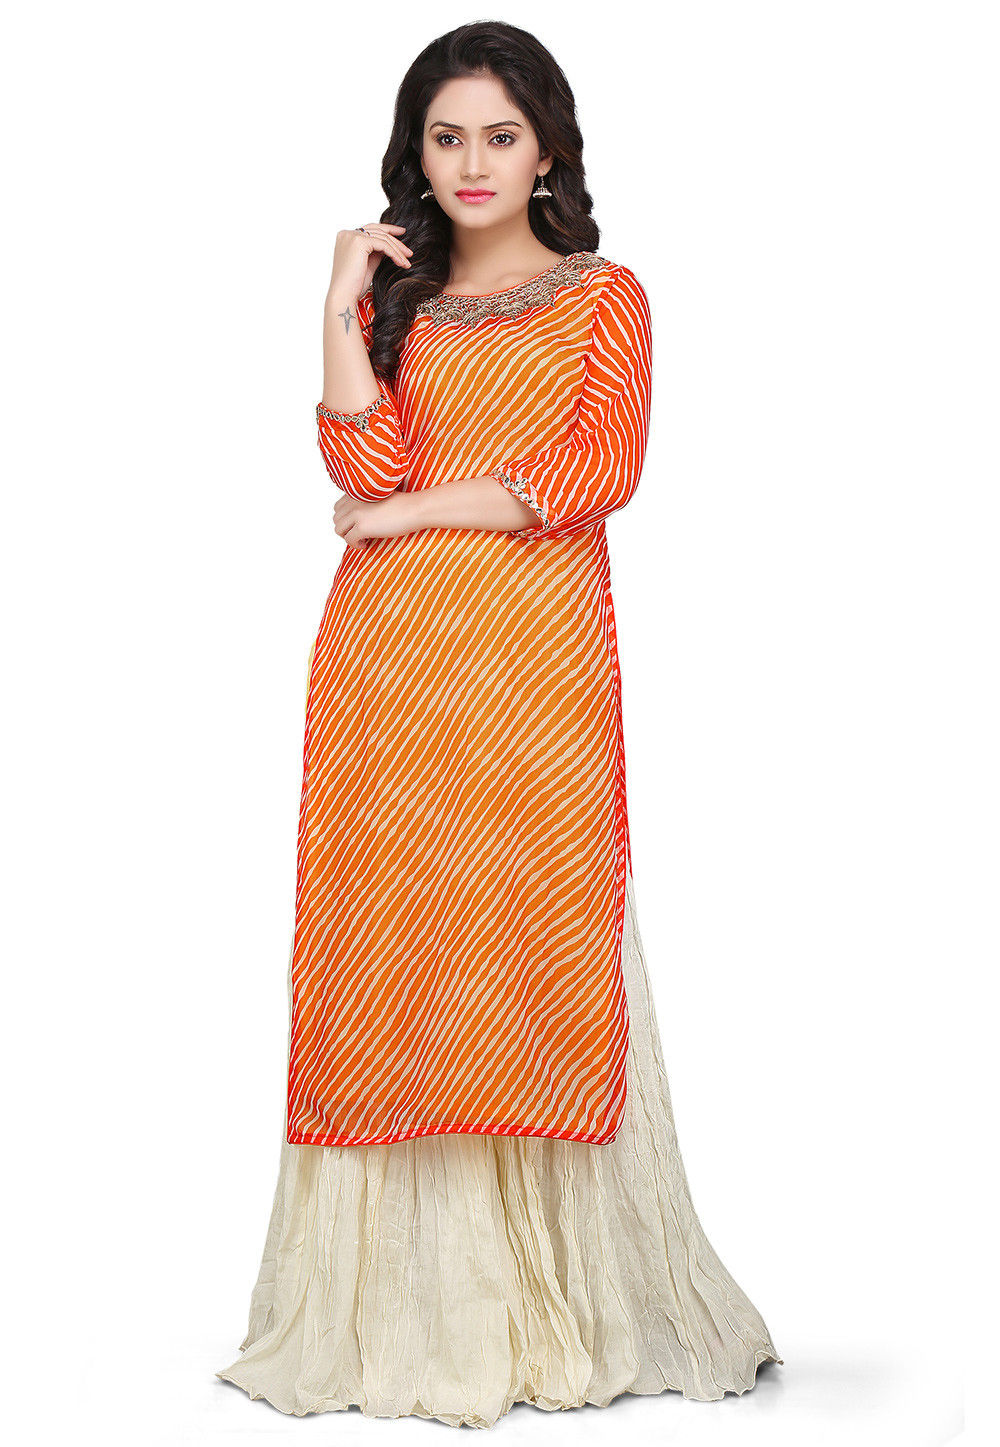 Lehariya Georgette Kurta Set in Orange and Off White